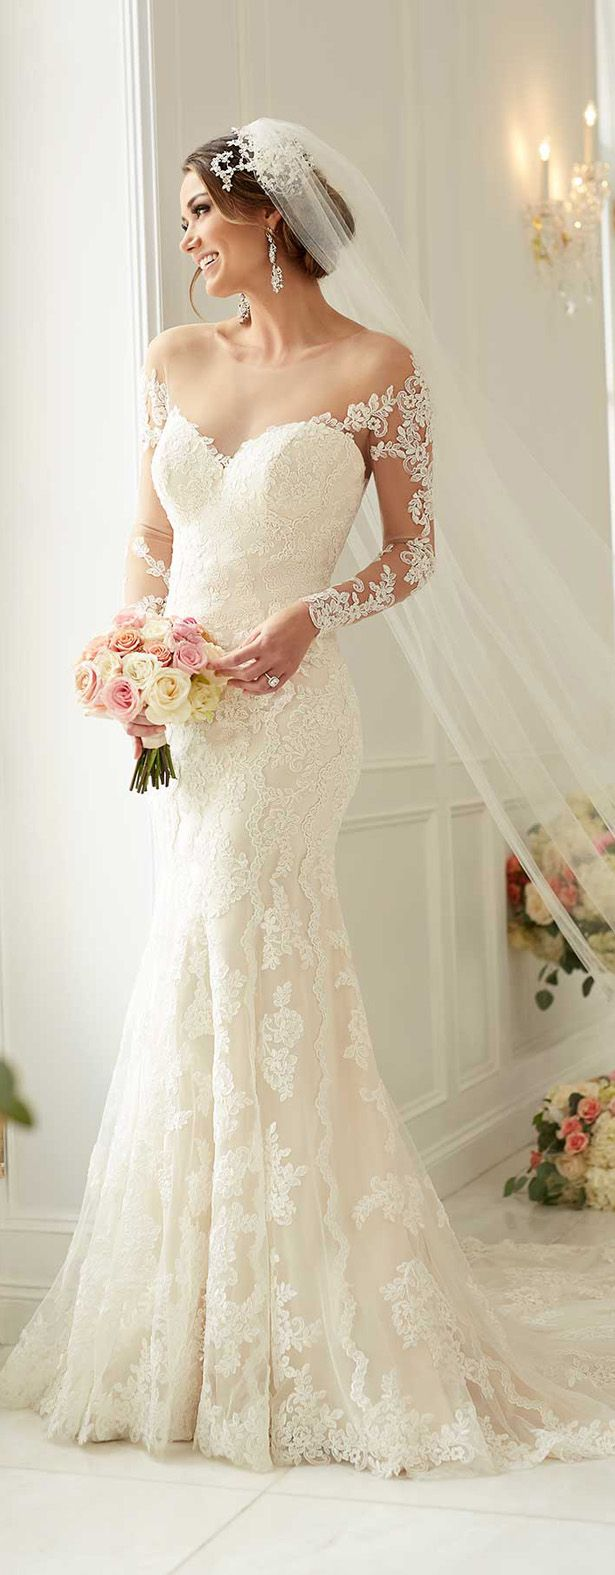 vintage-wedding-dresses-13-08132015-ky